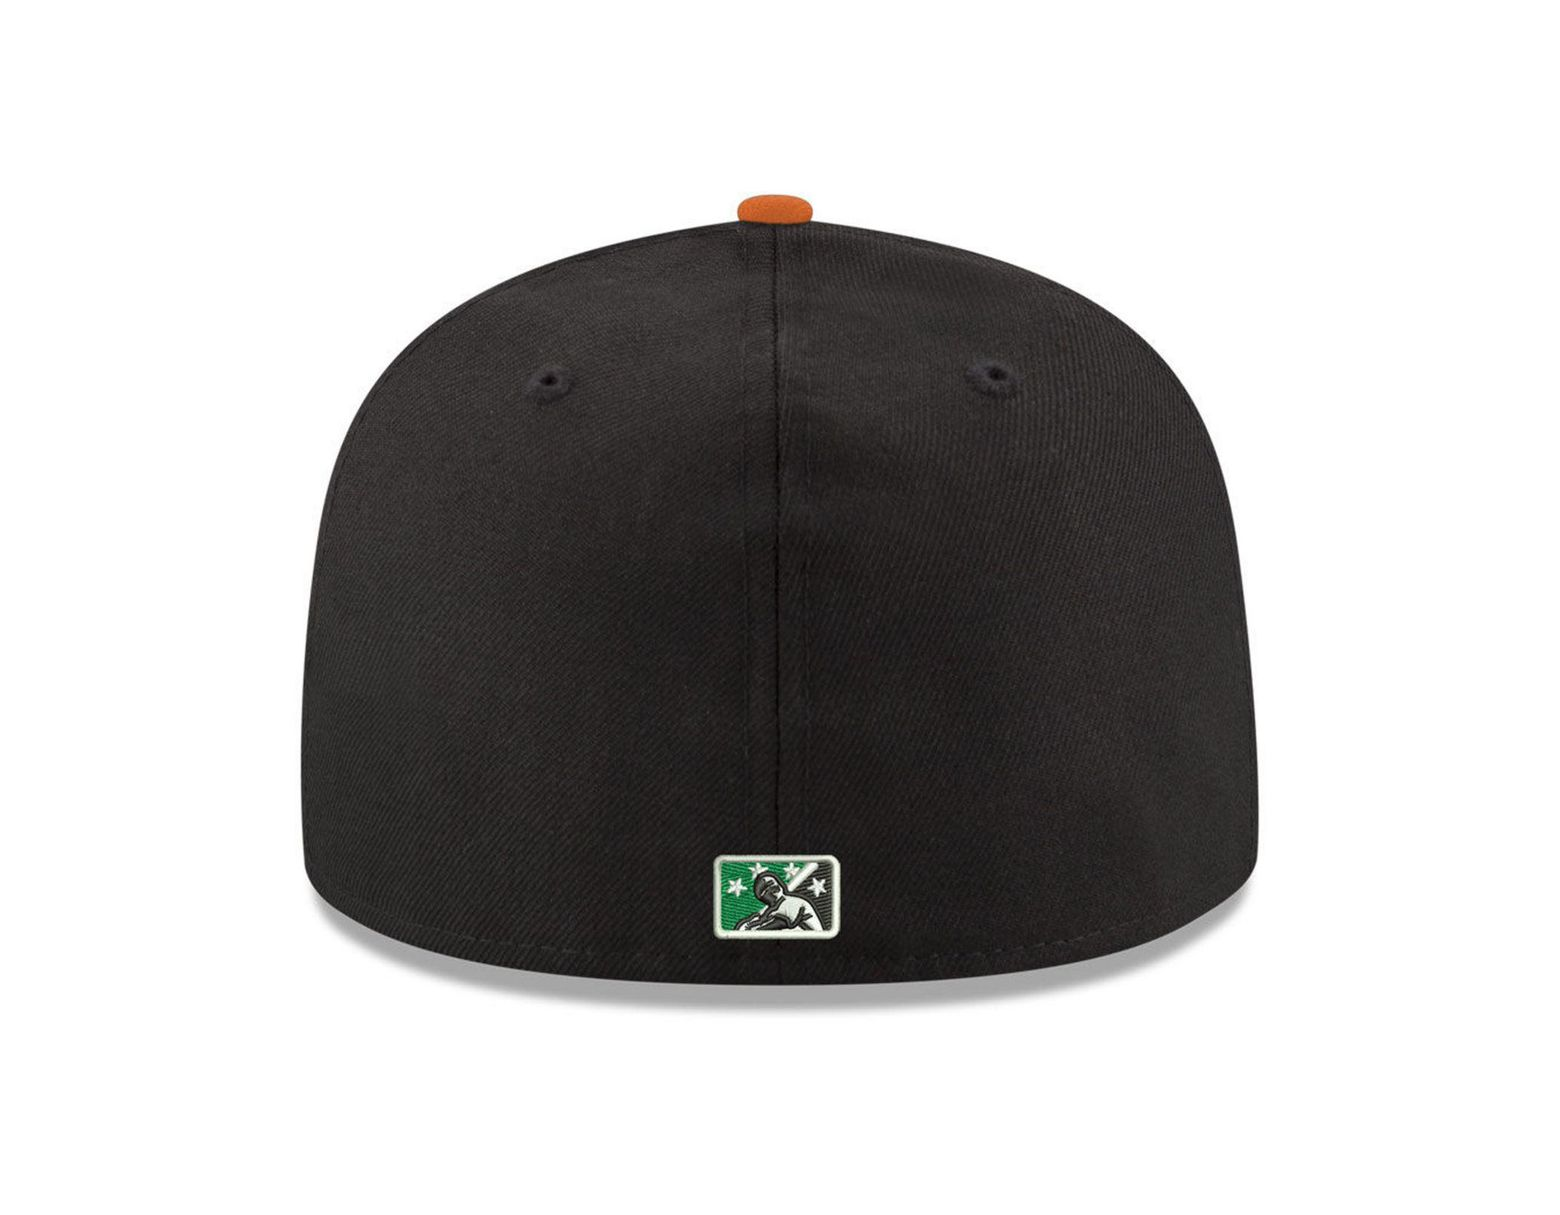 buy online bee3a 225e7 KTZ Down East Wood Ducks Ac 59fifty Fitted Cap in Black for Men - Lyst